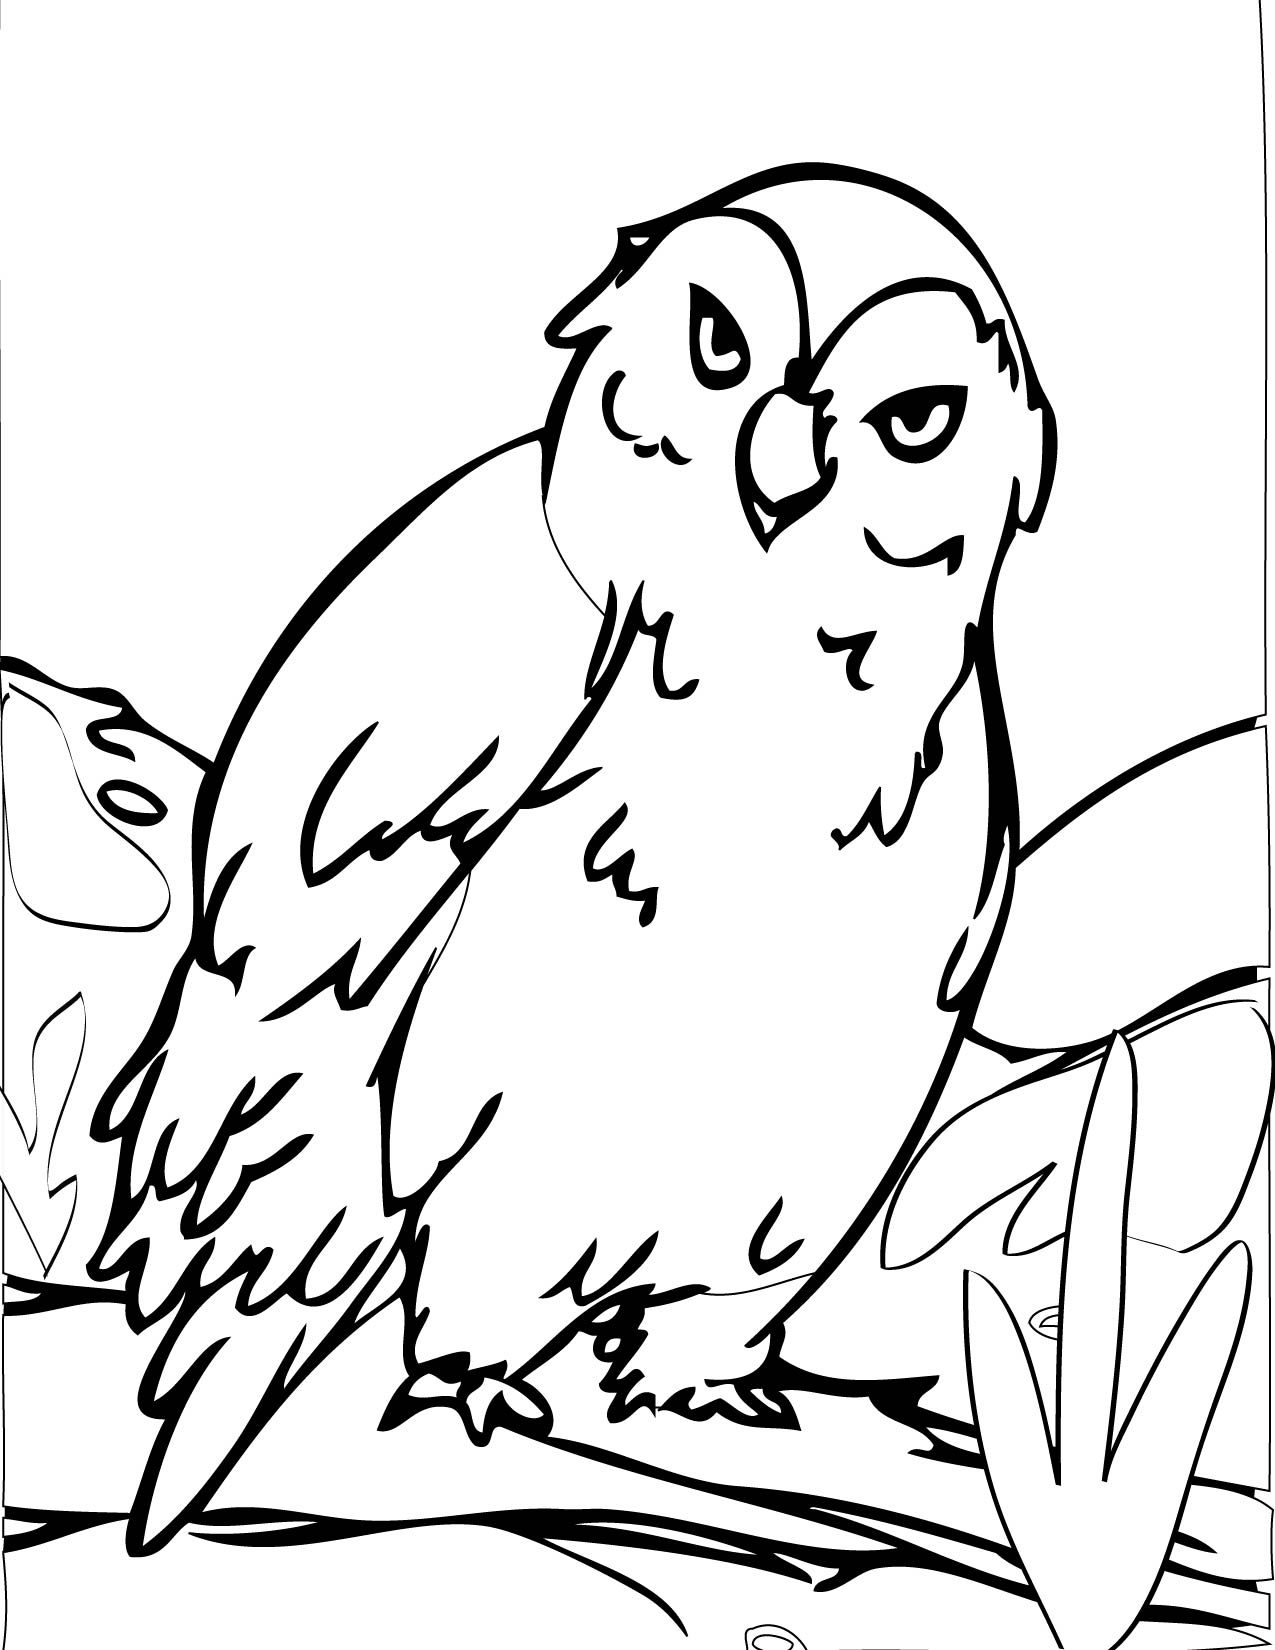 seal coloring pages - snowy owl